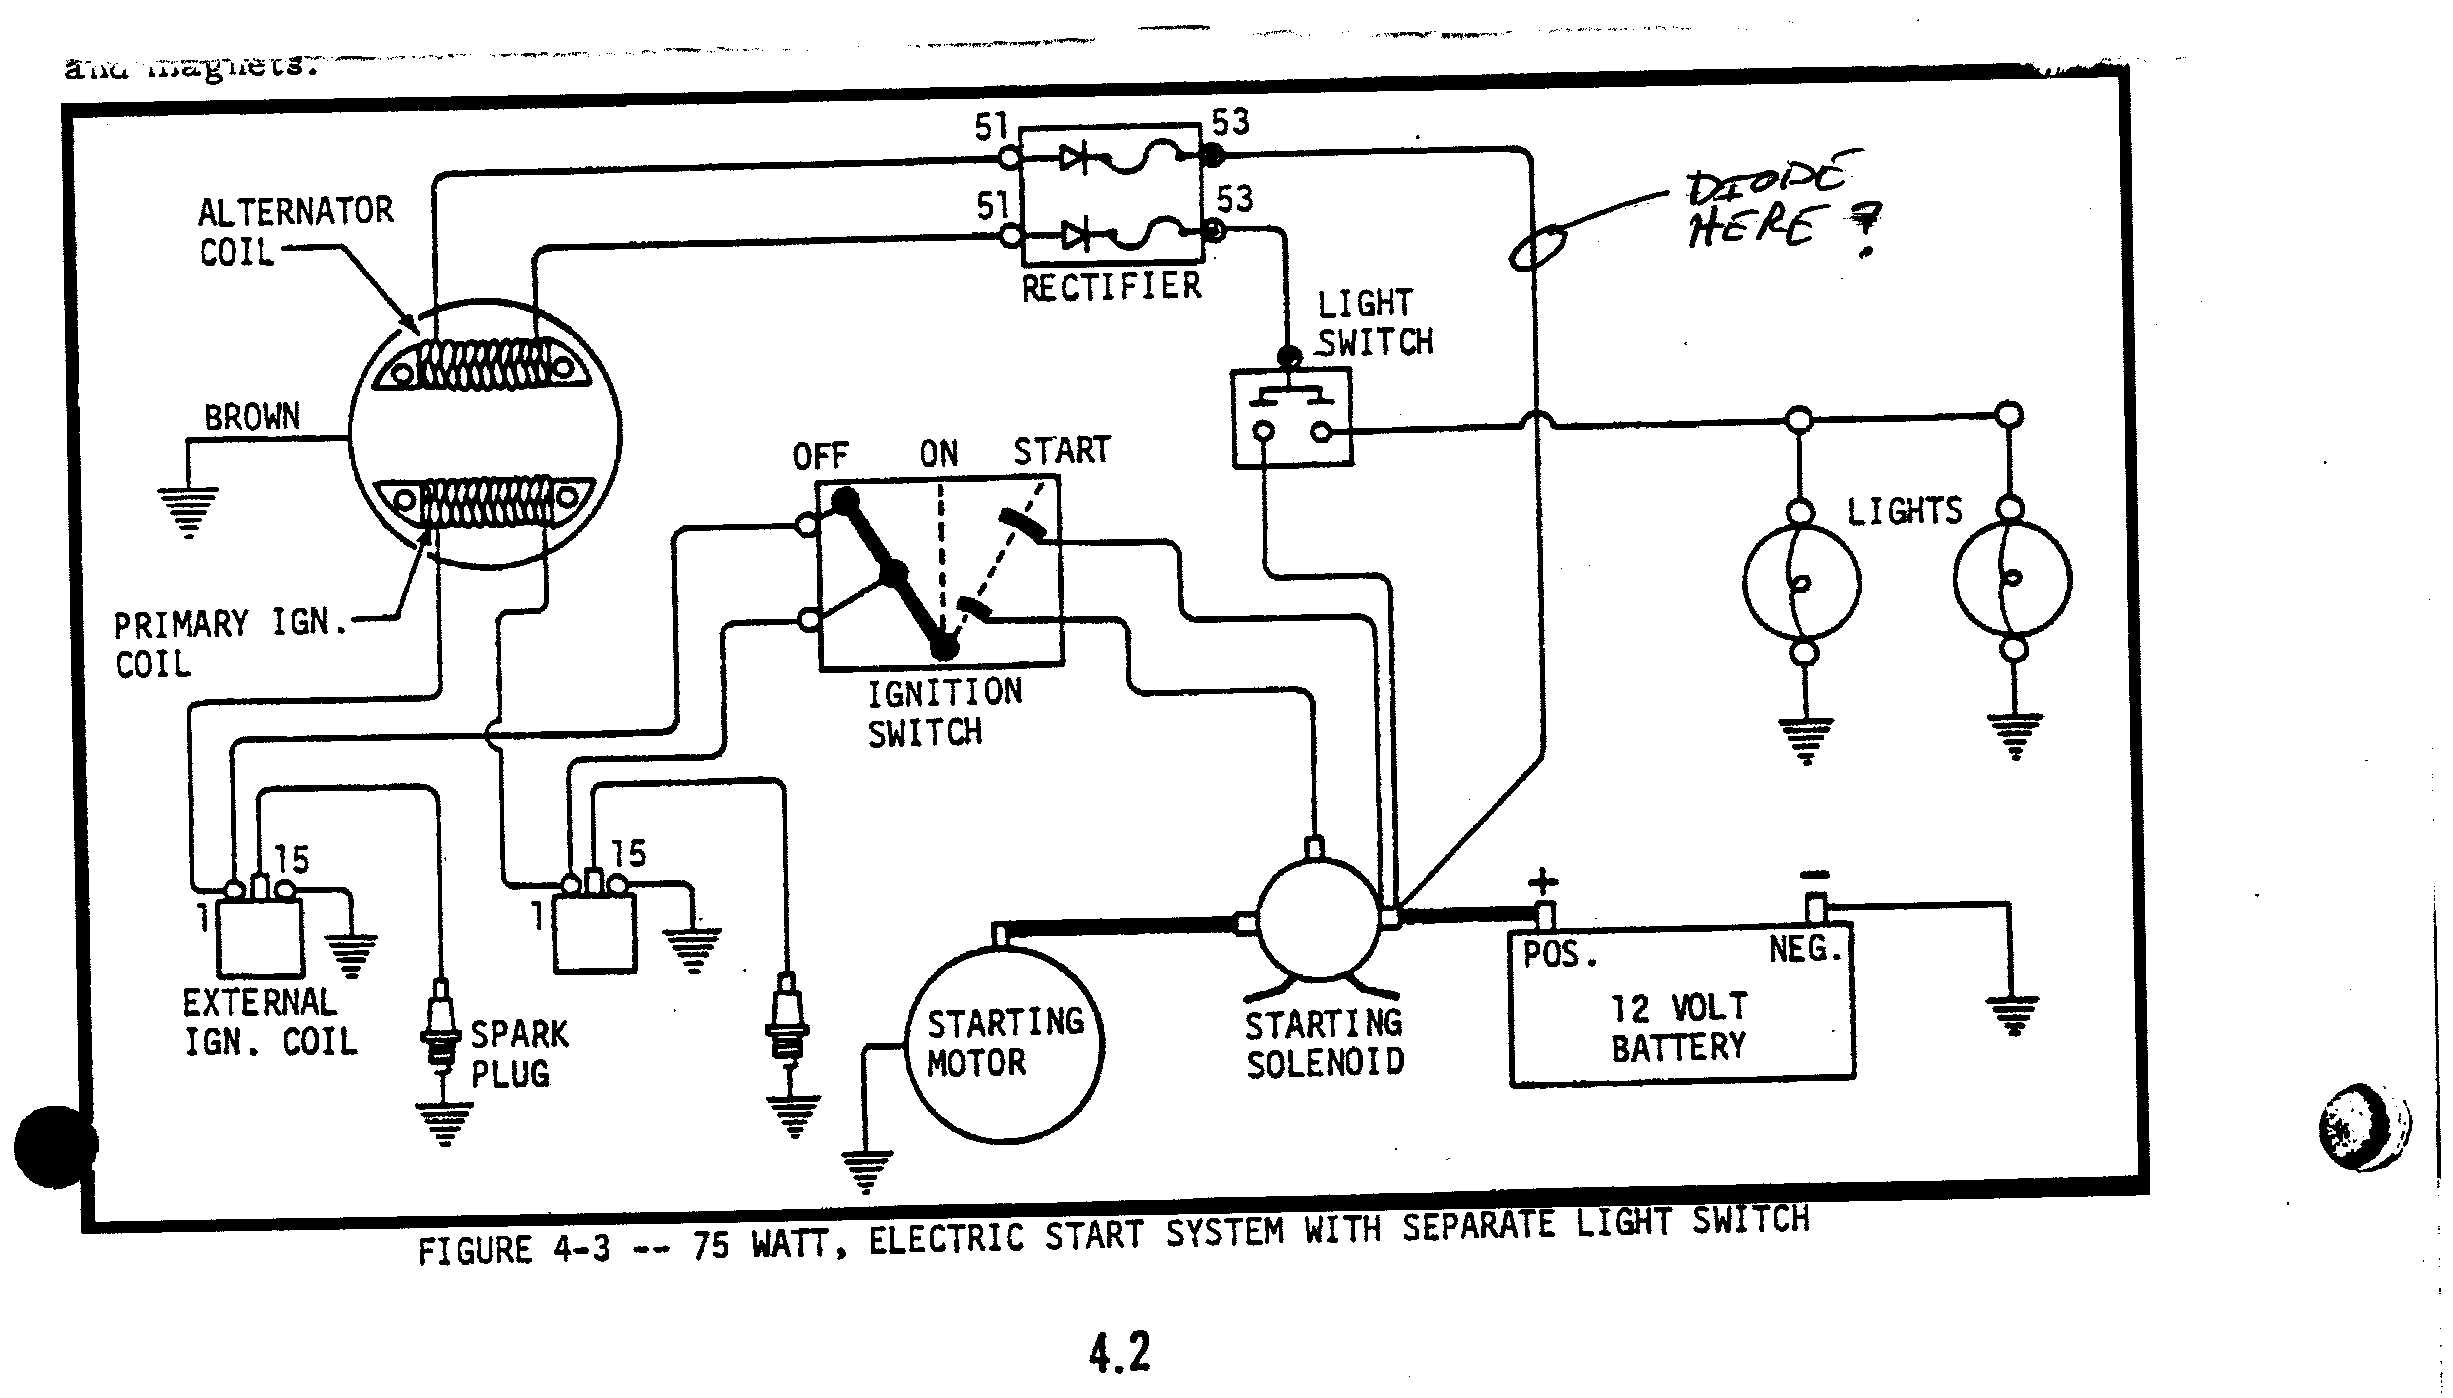 arctic cat f7 wiring diagram added elect start... not good! - page 3 - arcticchat.com ... 2003 arctic cat 250 wiring diagram